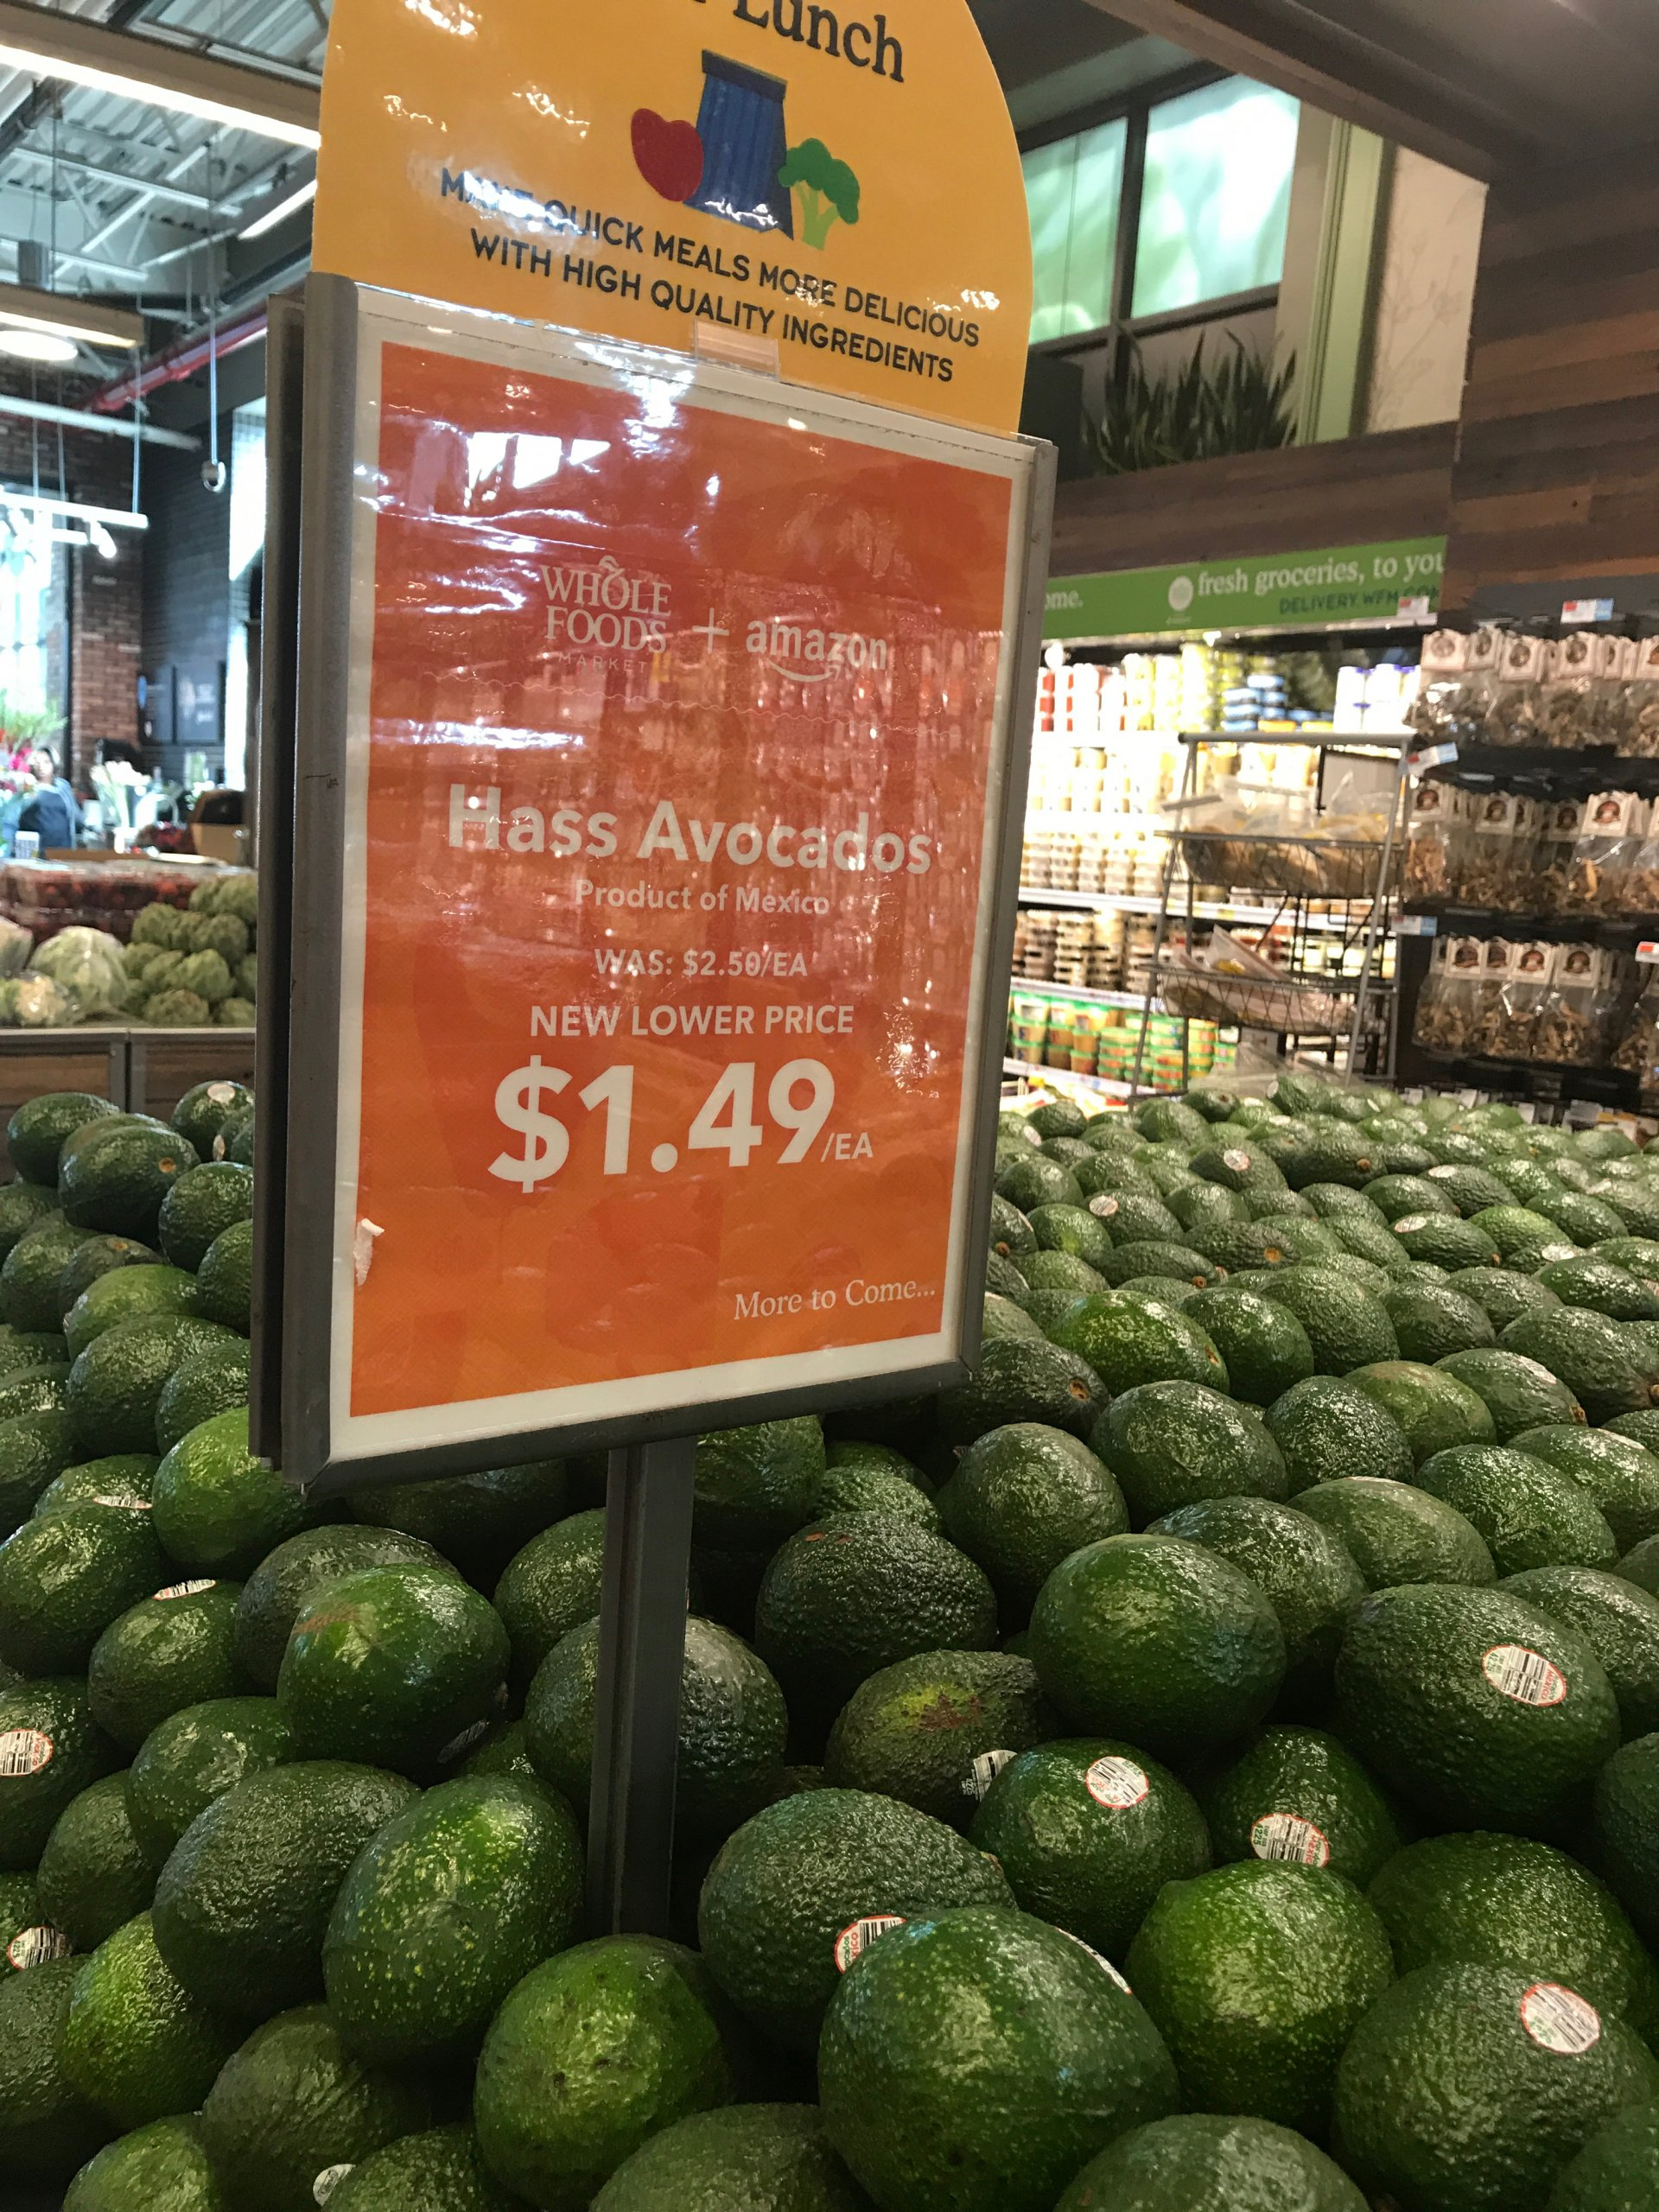 Initial observations of the Amazon-Whole Foods marraige